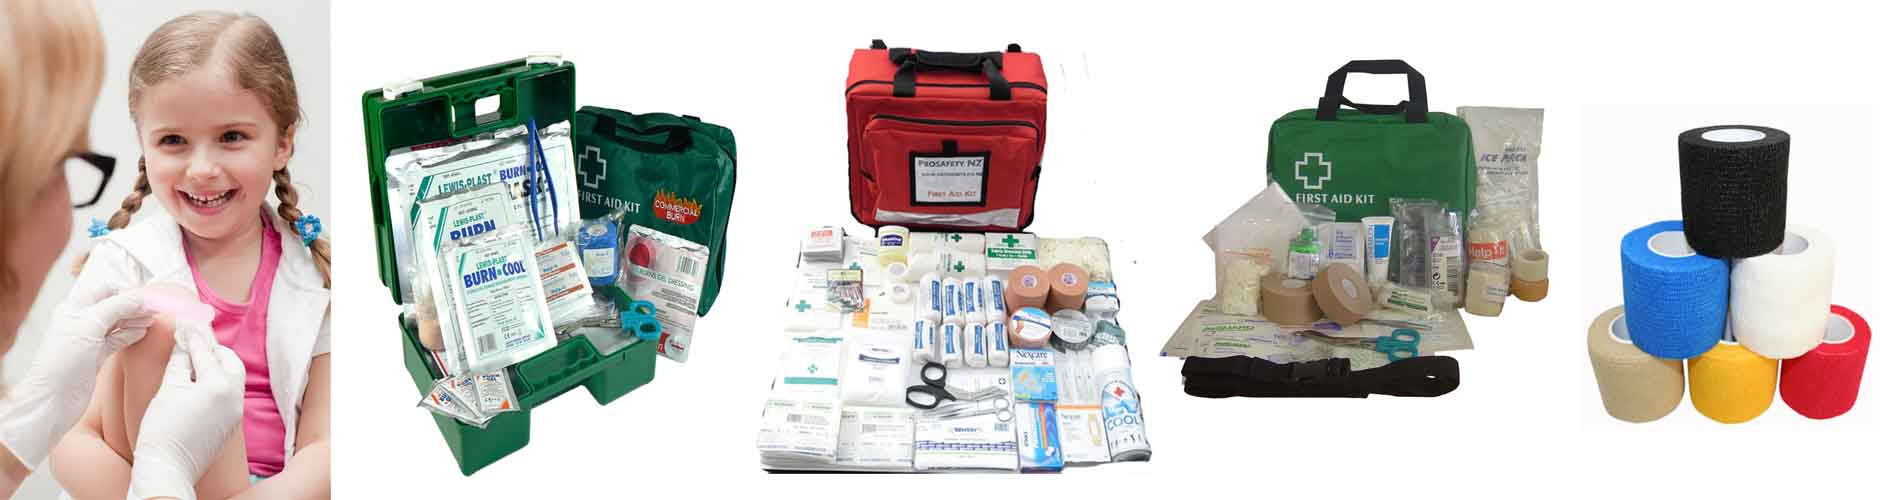 first aid kits and equipment